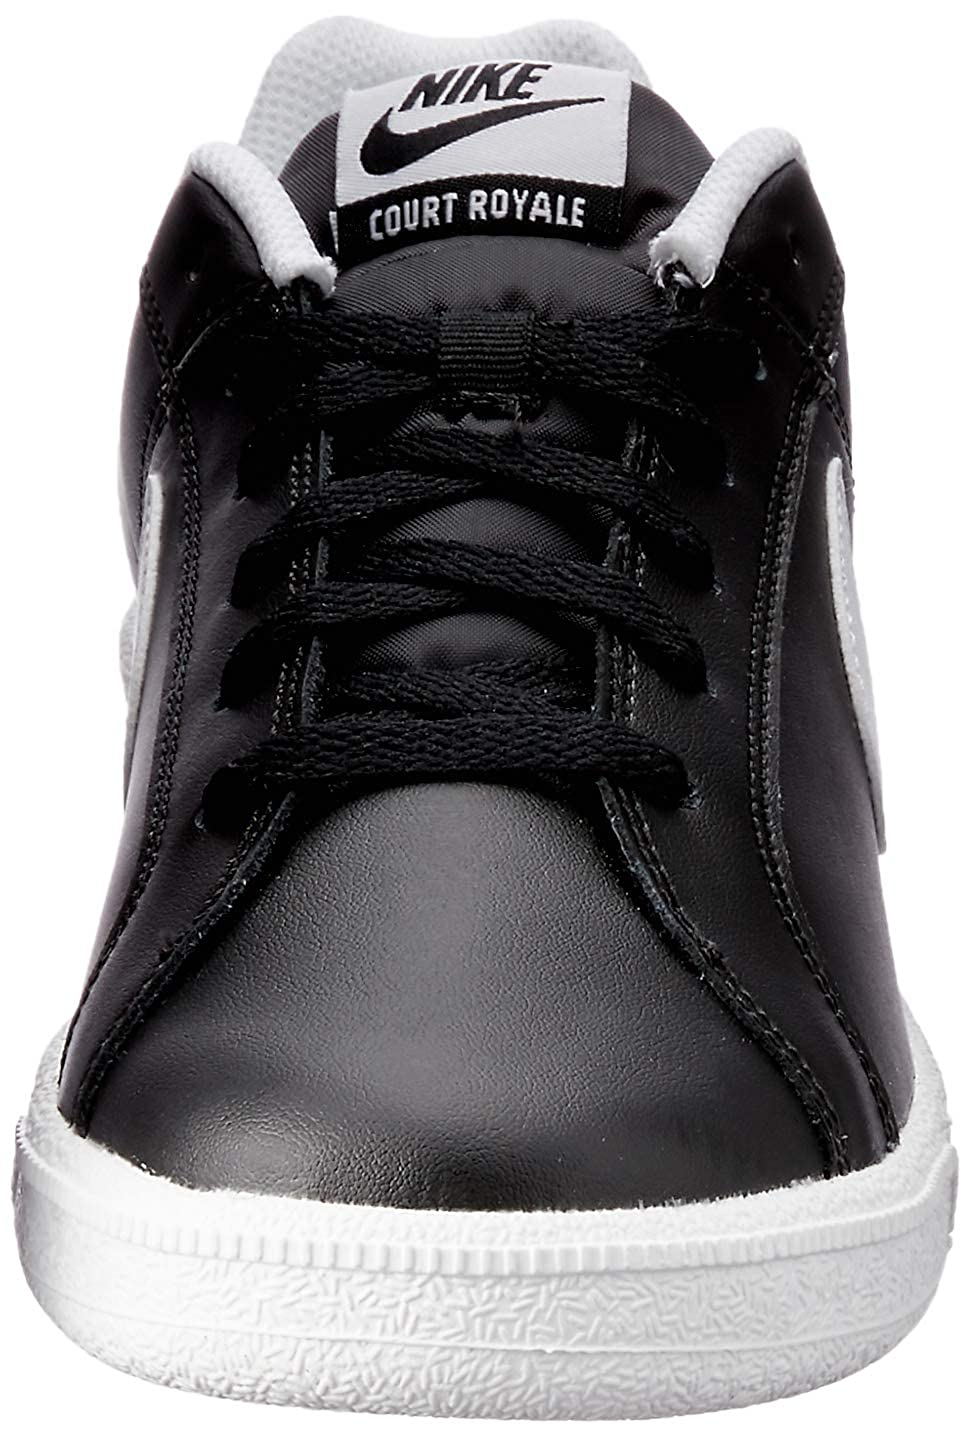 a758d78fd60446 Nike Men s Court Royale Sneakers  Buy Online at Low Prices in India -  Amazon.in